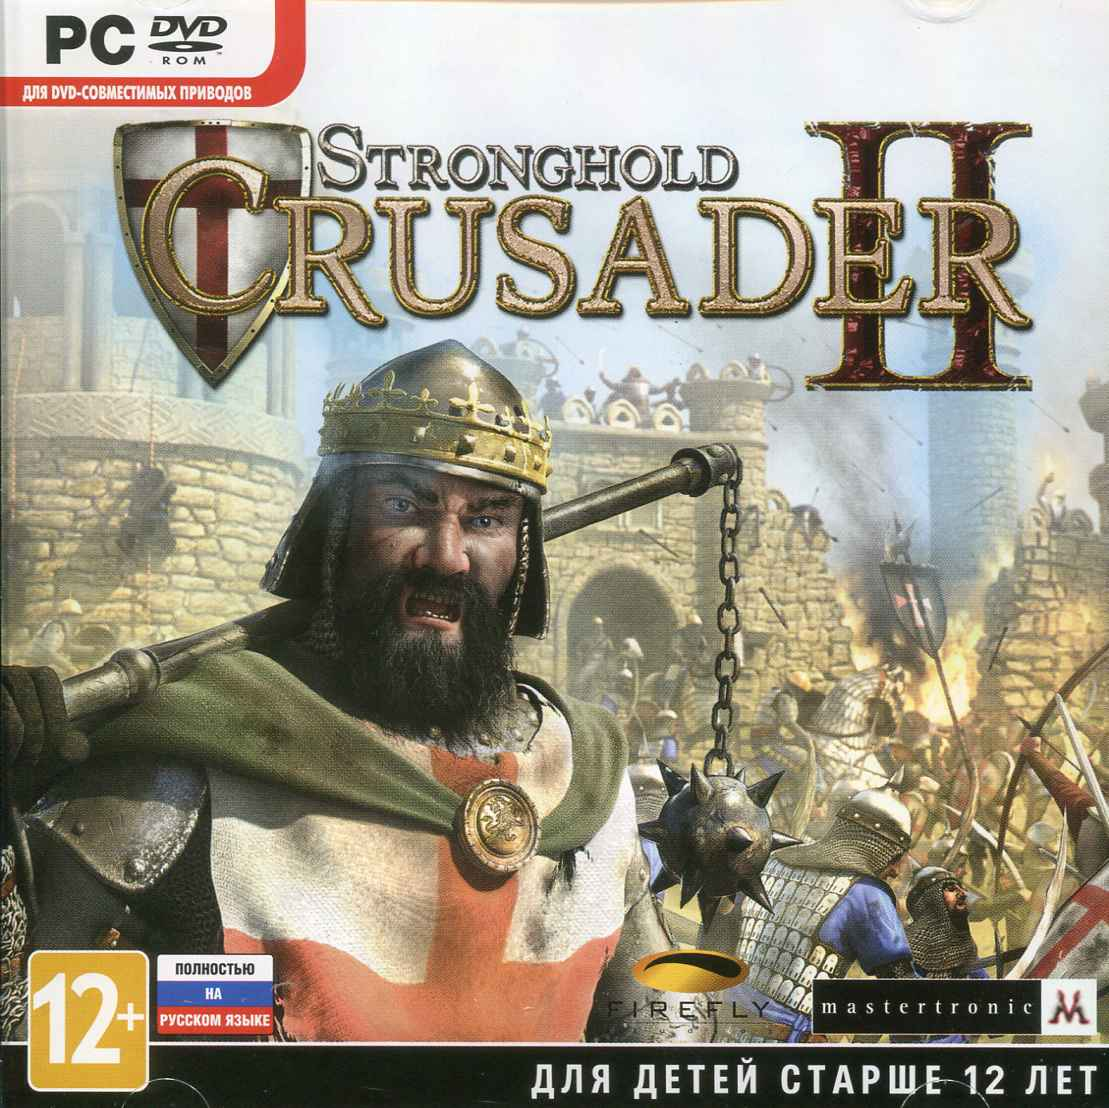 Download stronghold crusader 2 cd-key generator